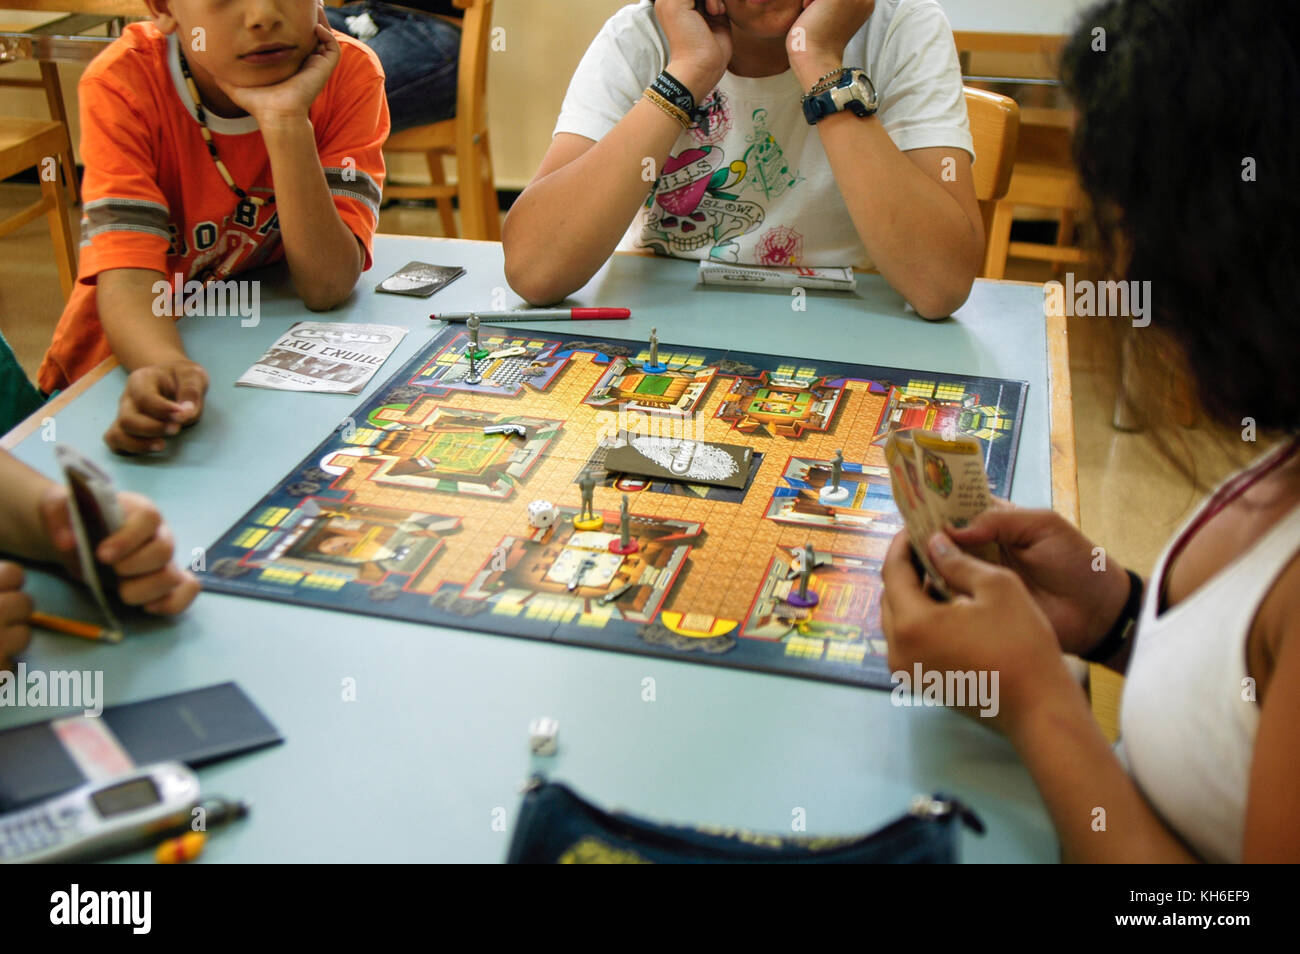 Cluedo Board Game Stock Photos Cluedo Board Game Stock Images Alamy